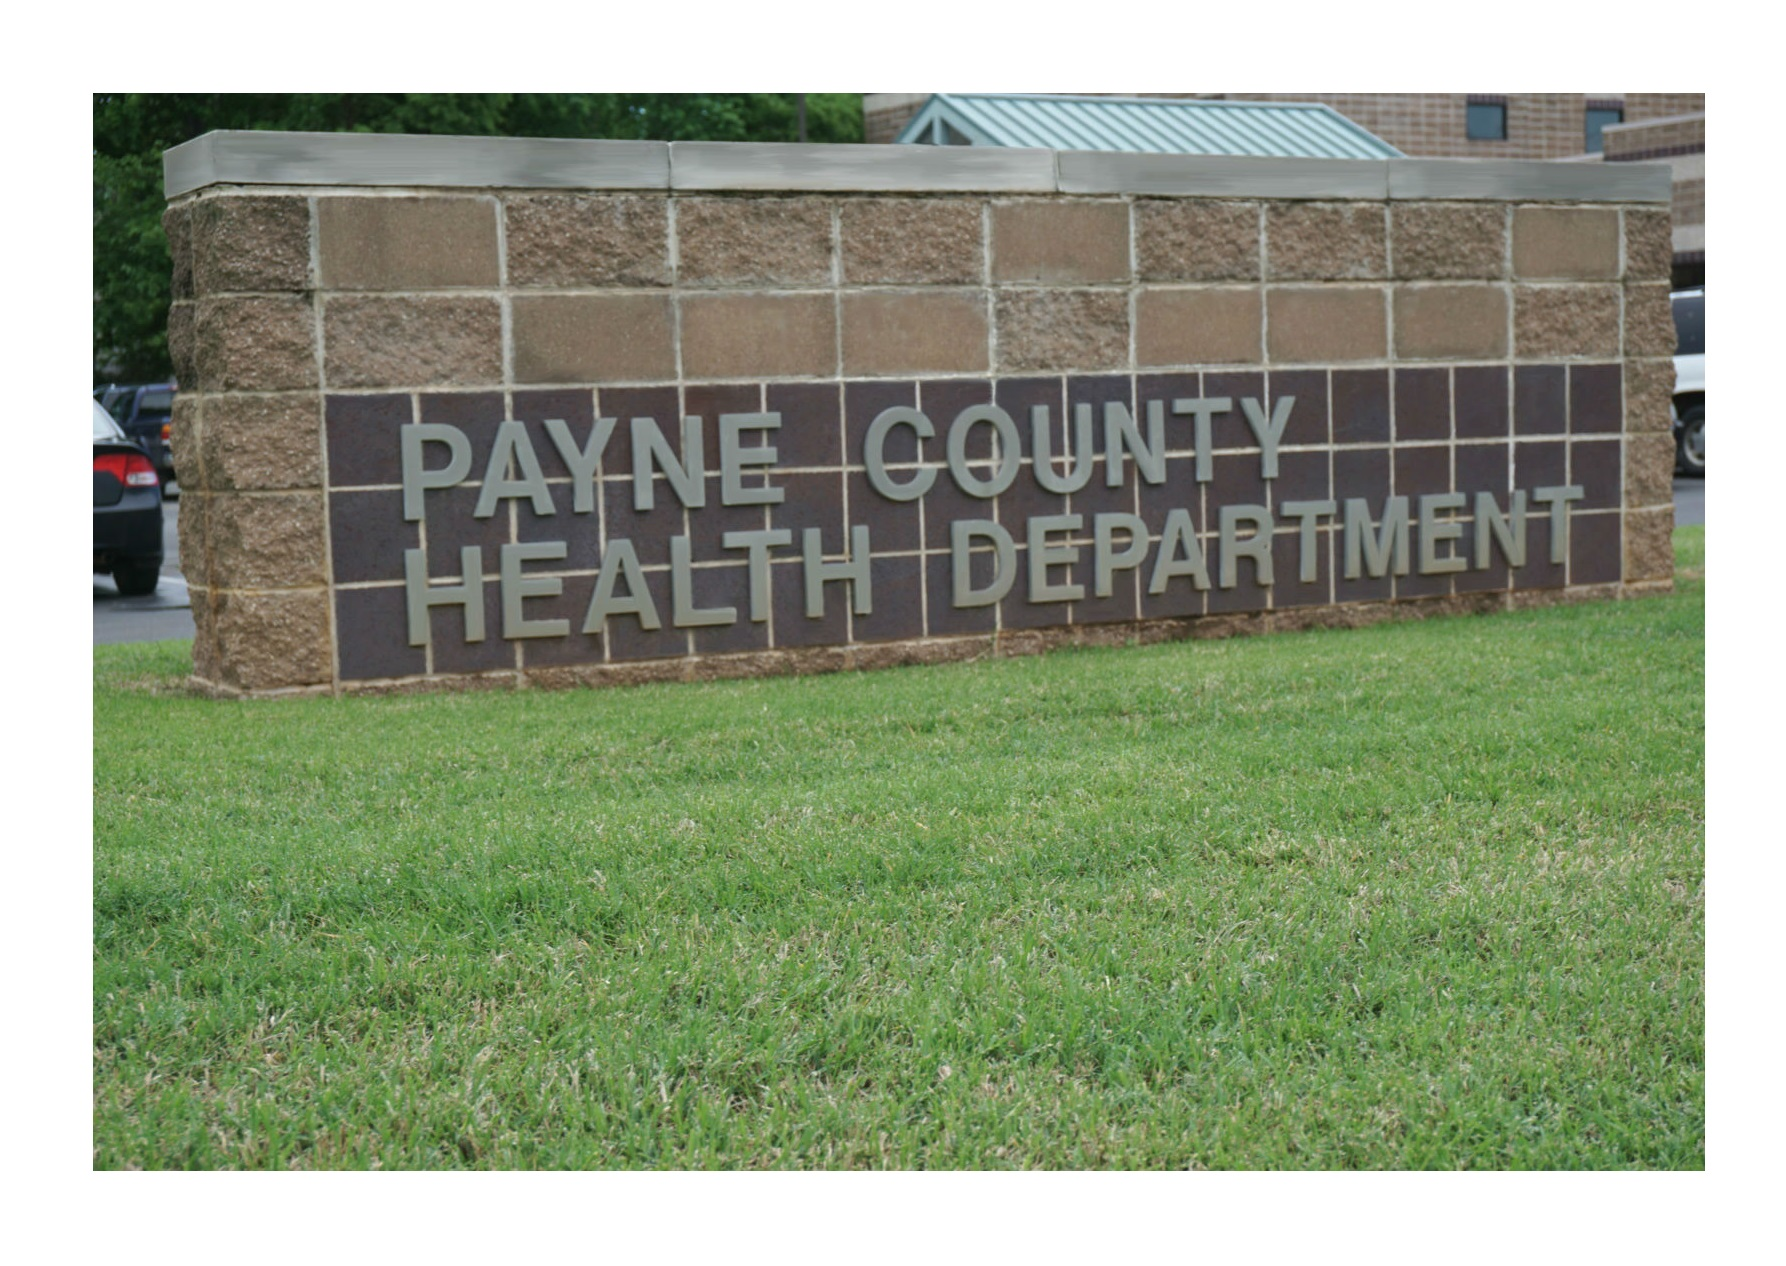 Payne County Health Department Sign